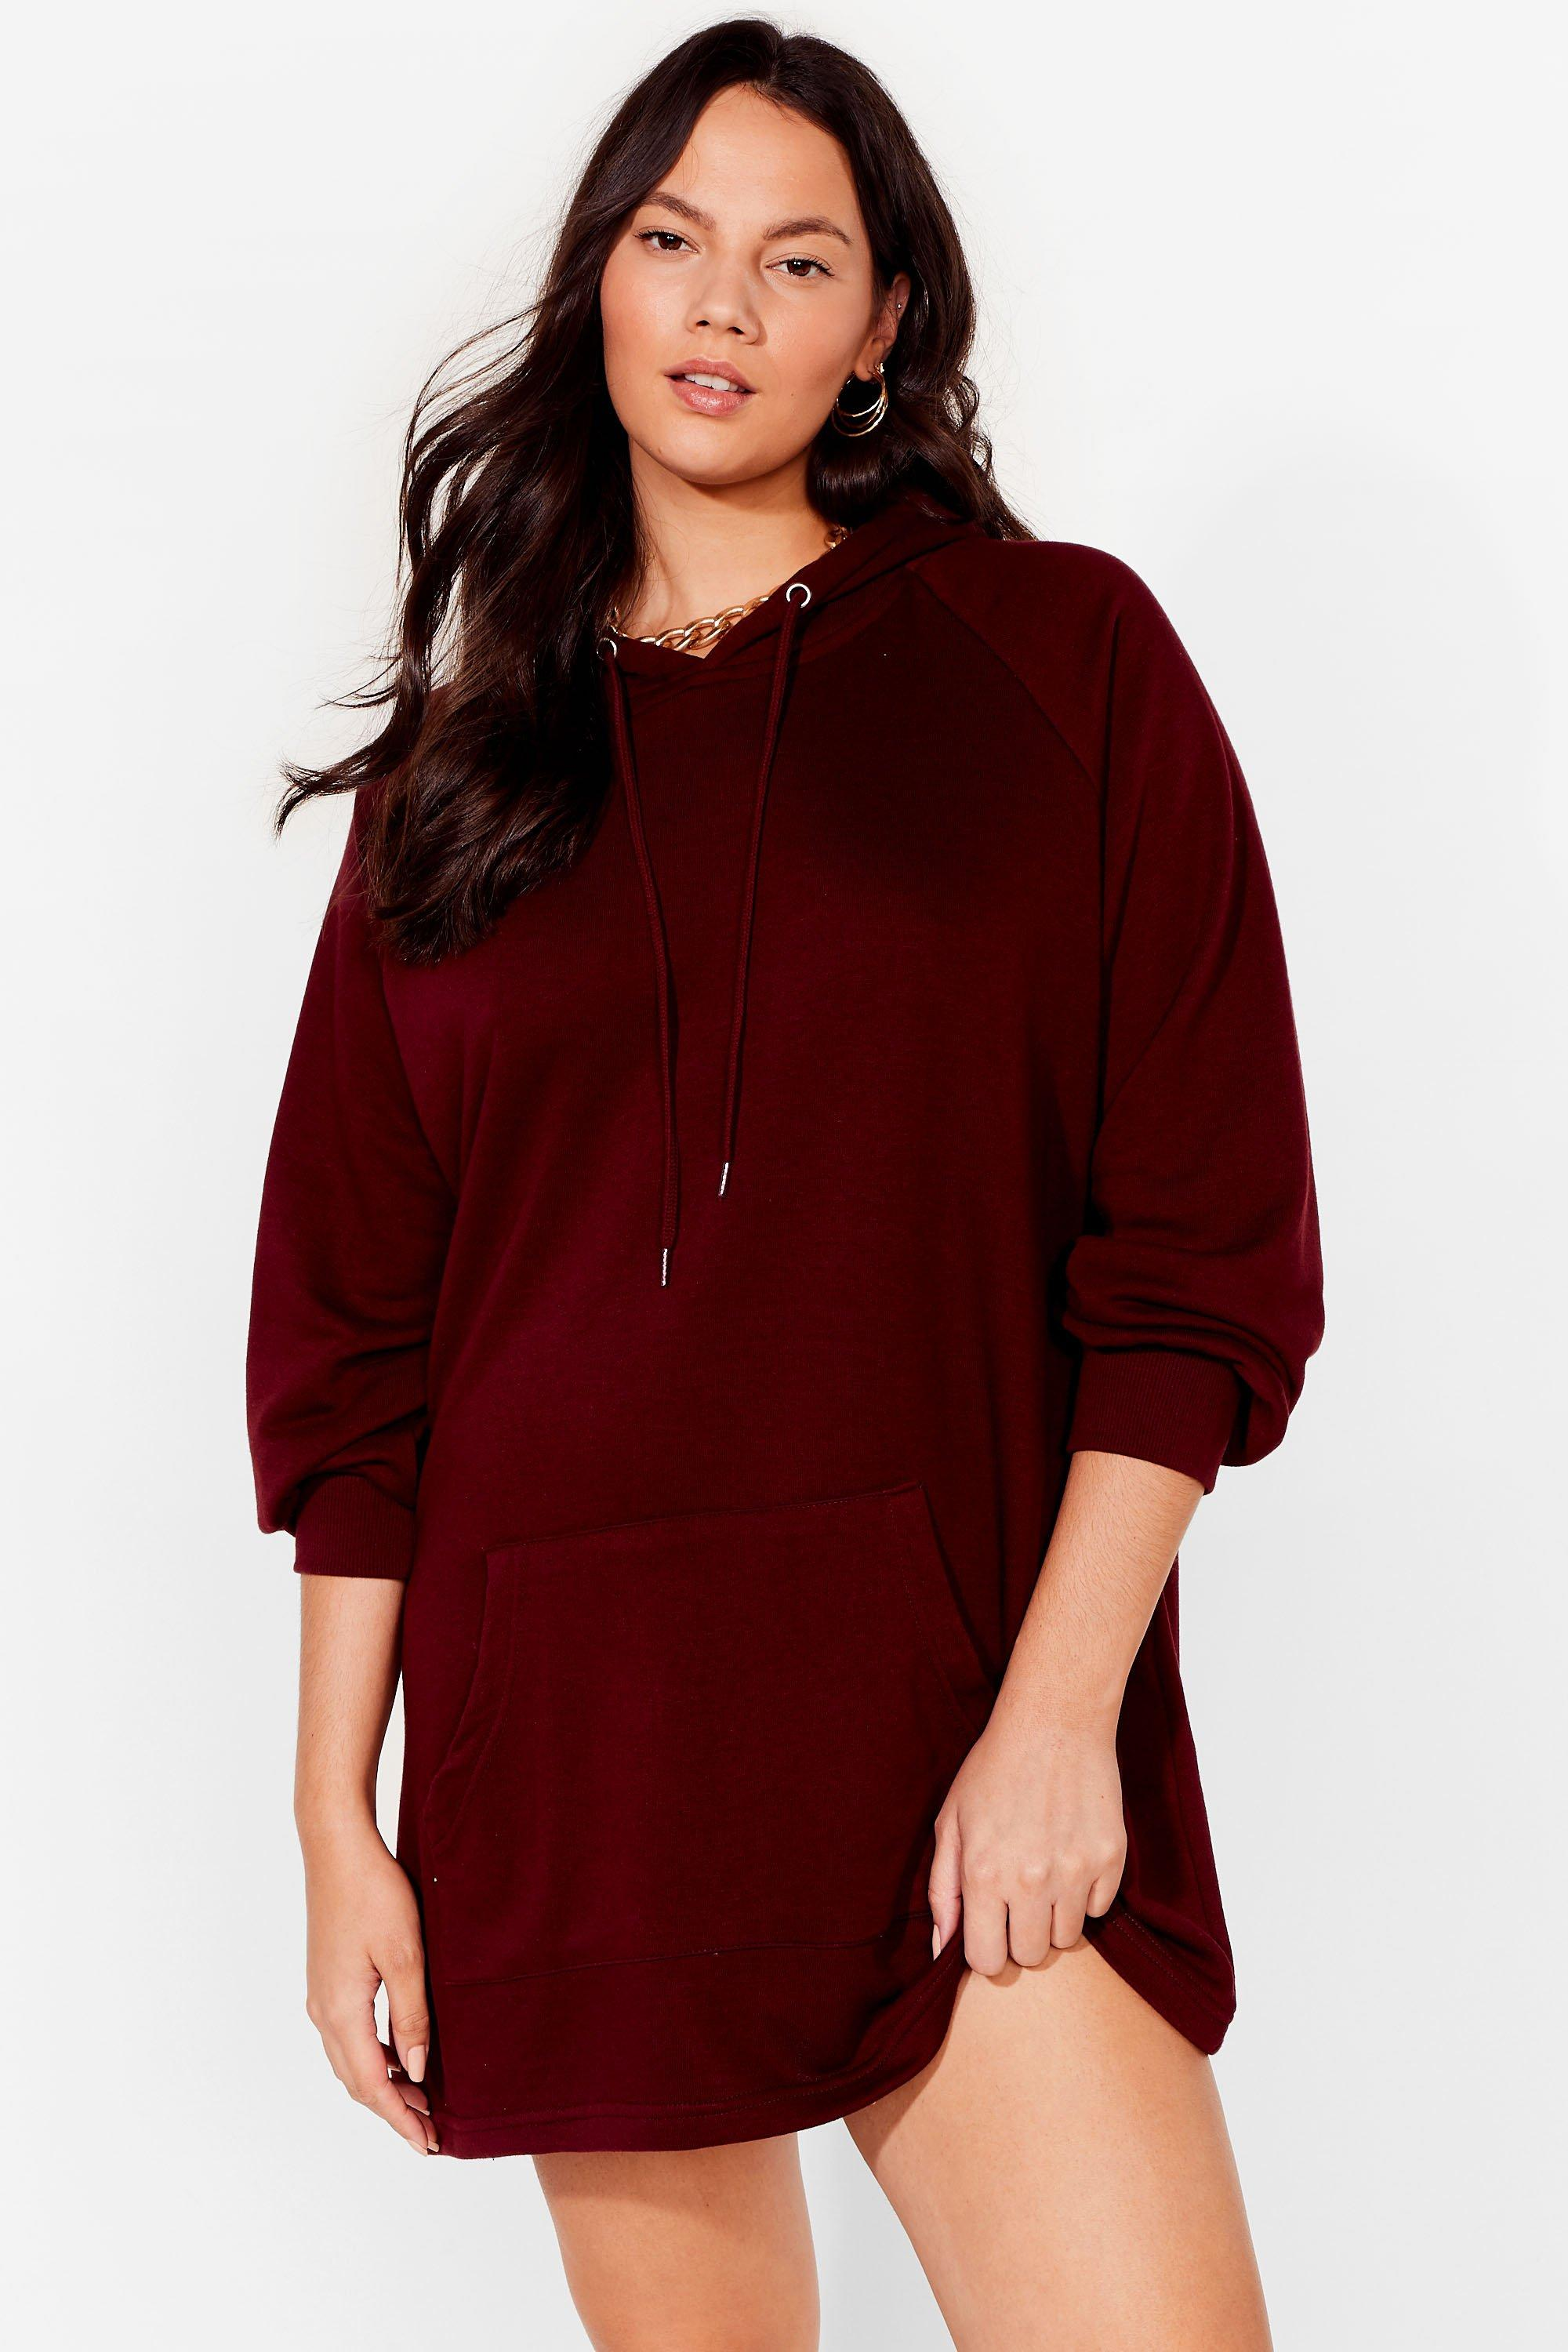 All Night Longline Plus Sweatshirt Dress 15